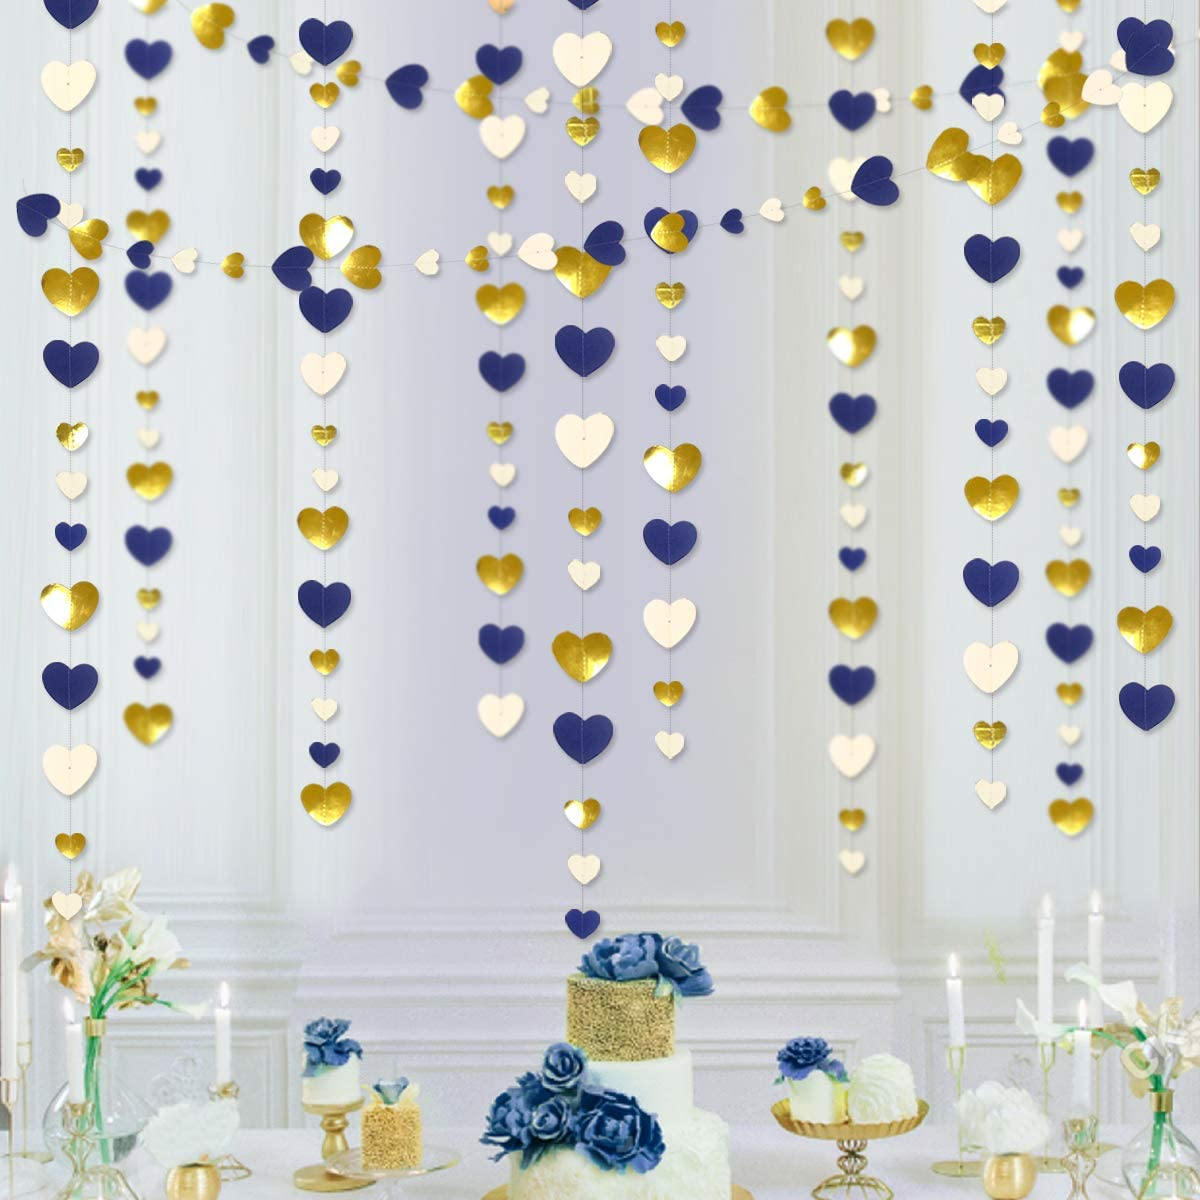 52 Ft Navy Blue Beige Gold Party Decorations Love Heart Hanging Paper Garland Streamer Banner for Bachelorette Engagement Wedding Birthday Bridal Shower Anniversary Valentines Party Supplies (4pack)